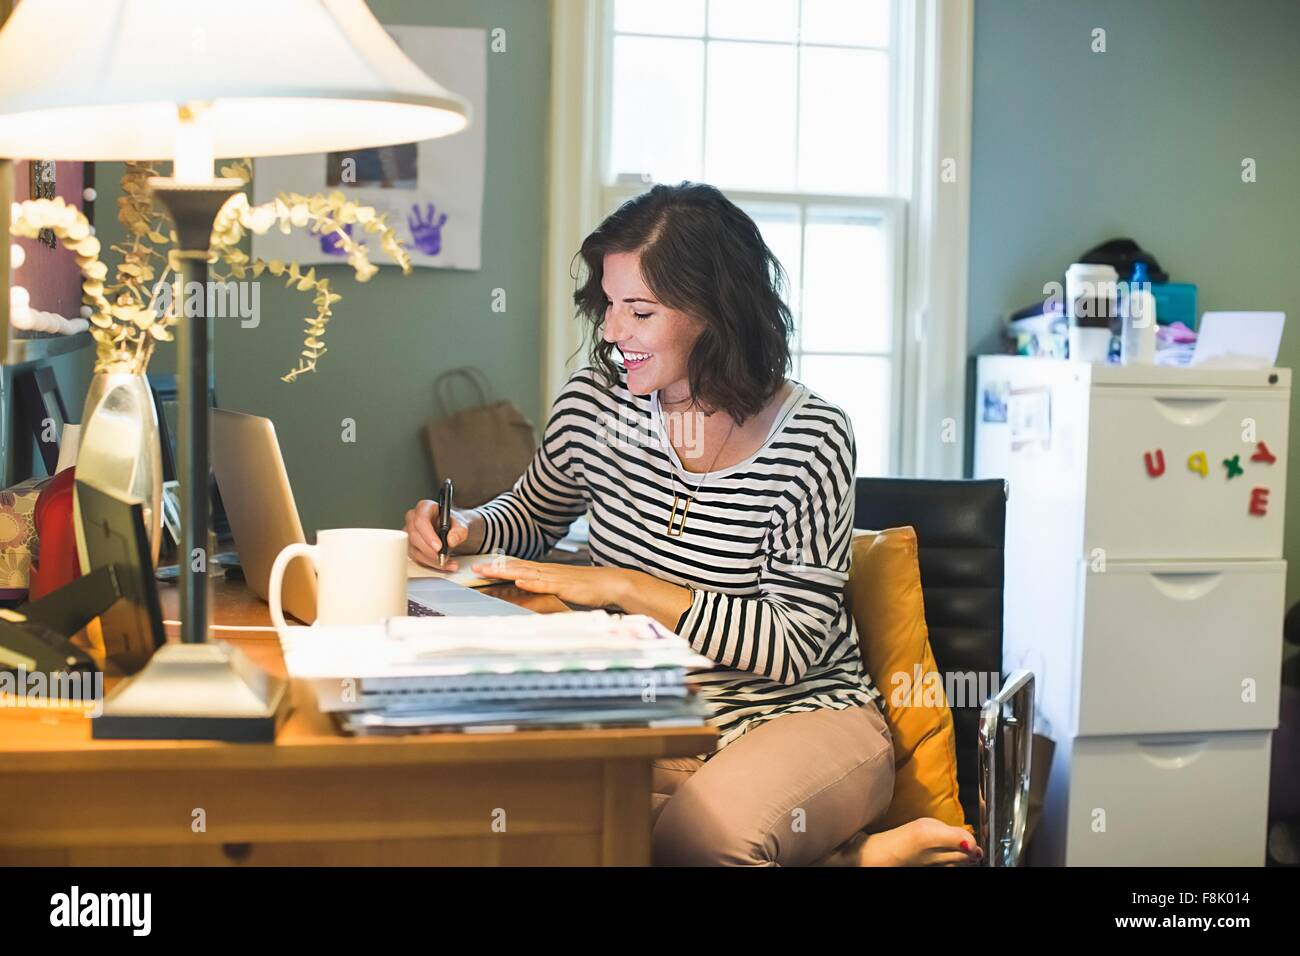 Mid adult woman at desk, laptop and coffee cup in front of her, writing in book - Stock Image